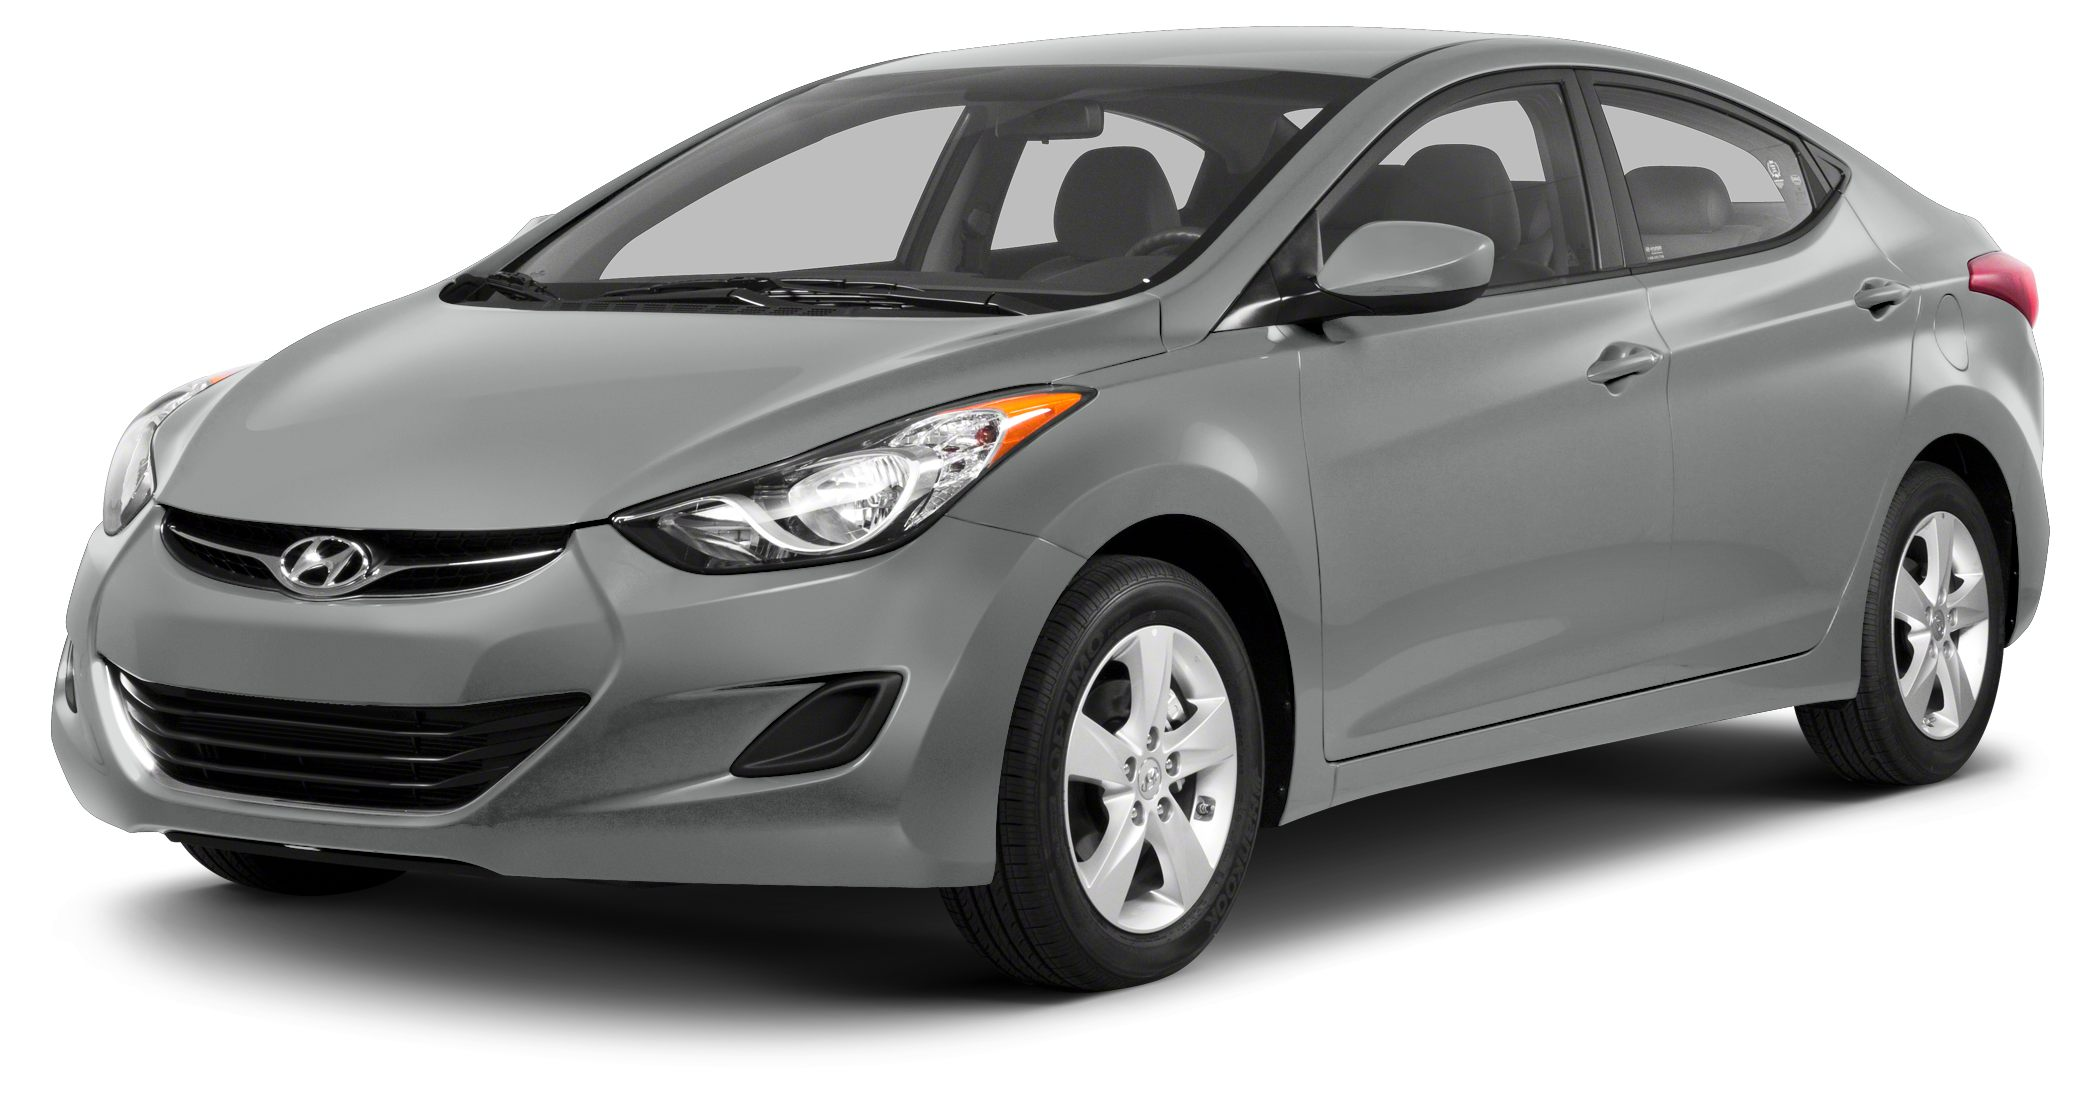 2013 Hyundai Elantra GLS Hyundai Certified --- Just 7k mile on this one owner Elantra that comes w